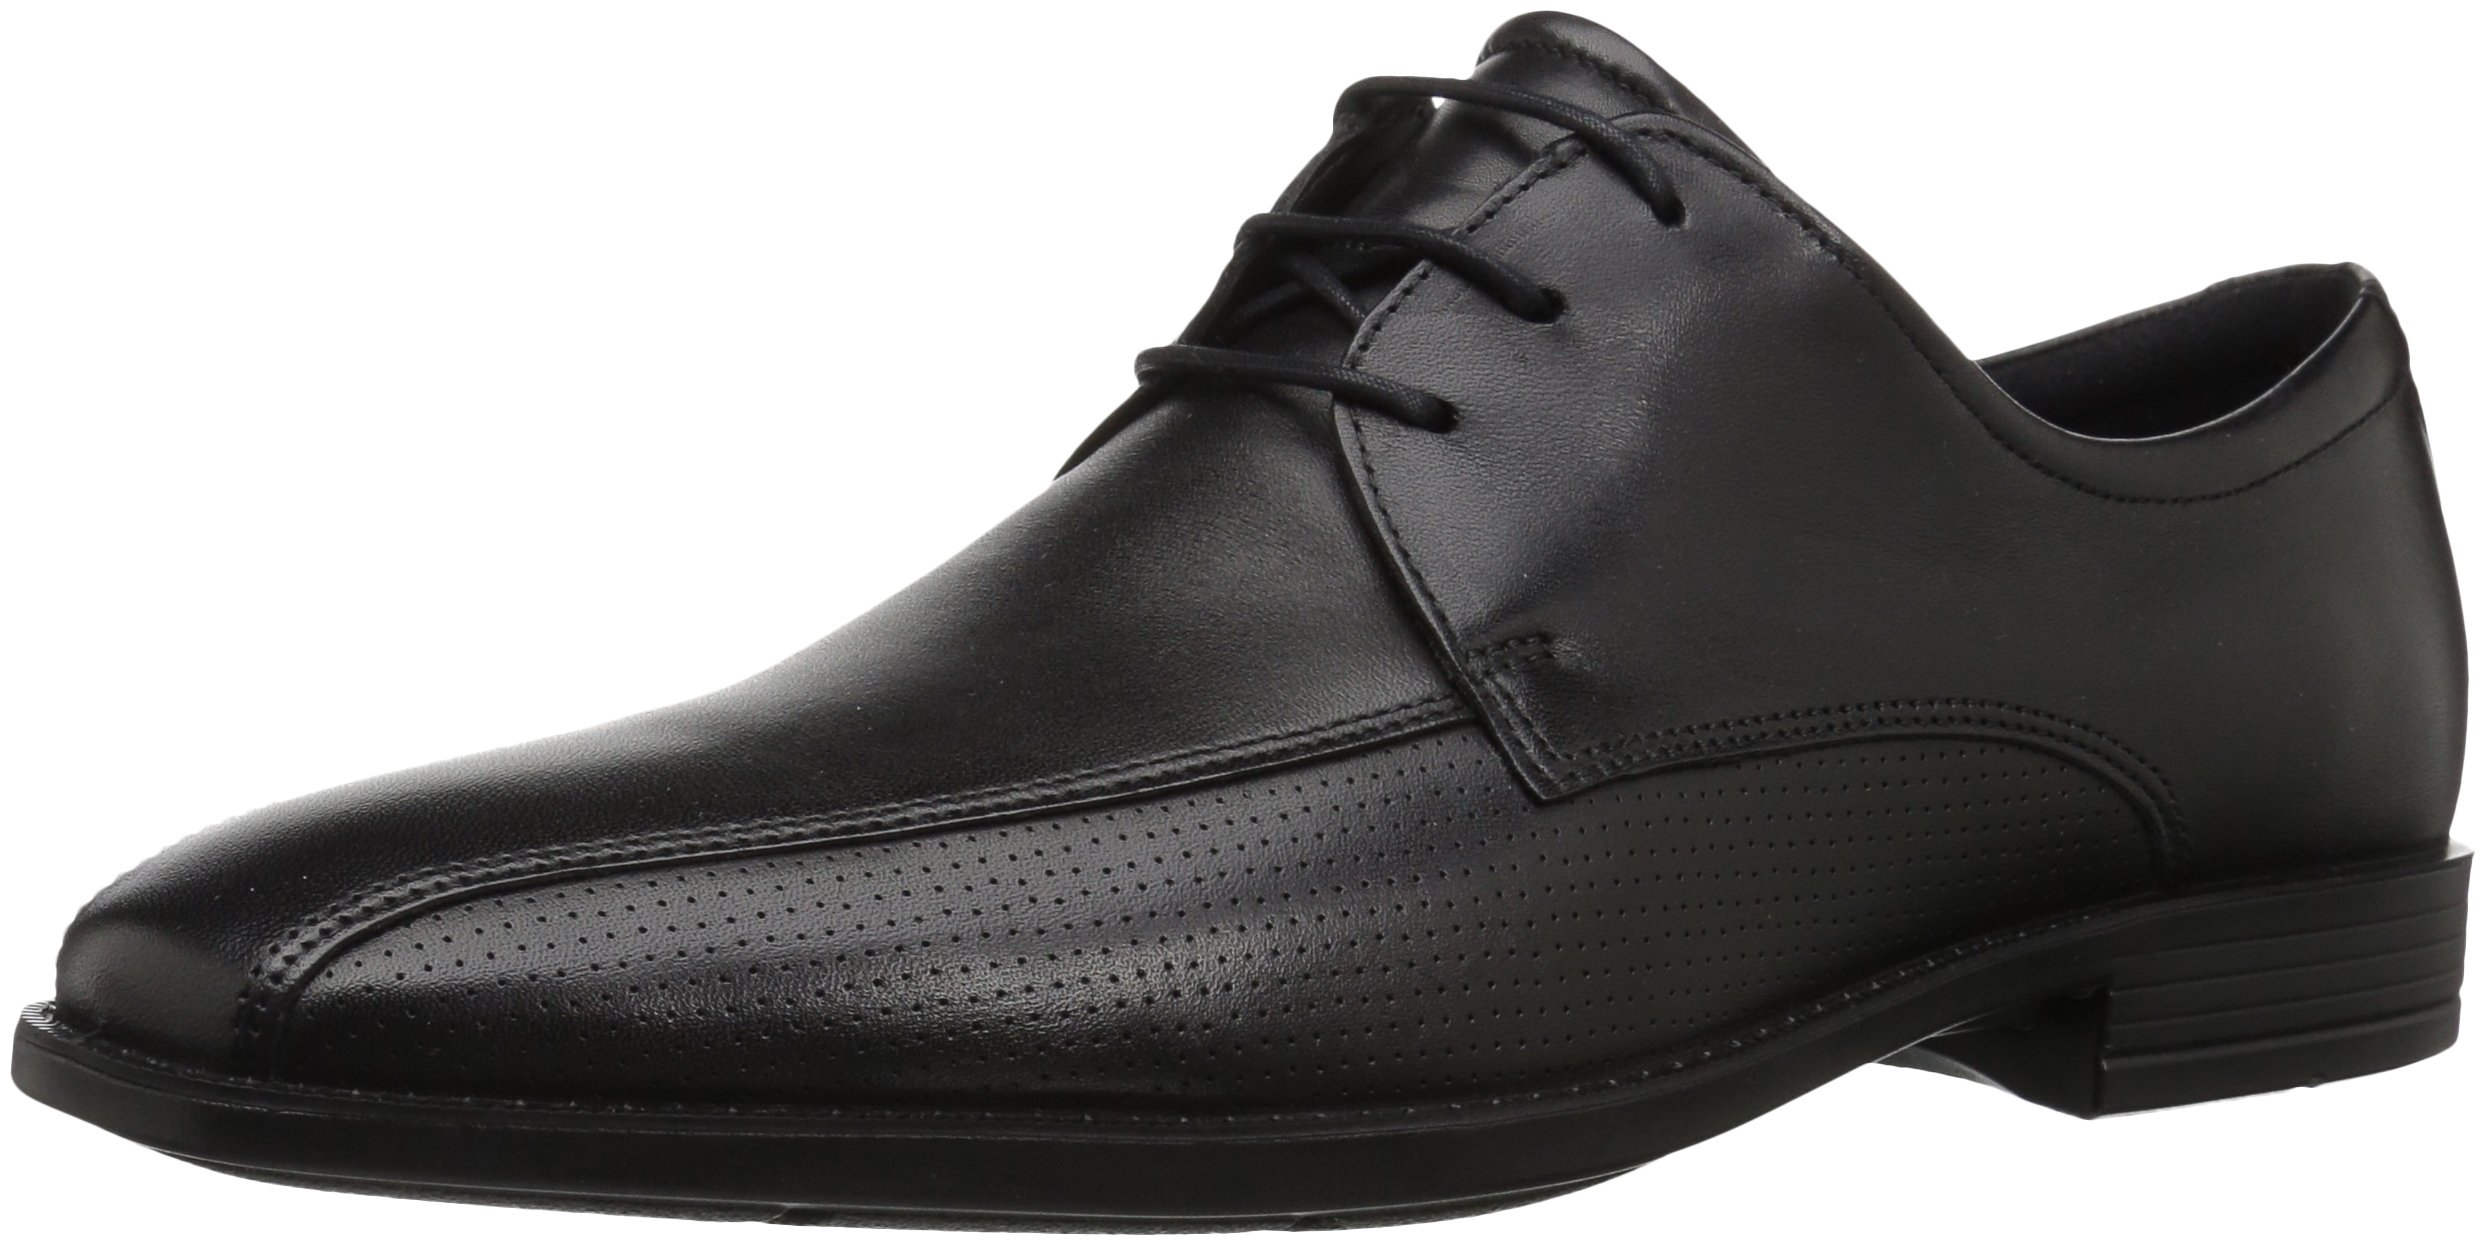 ECCO Men's Edinburgh Perforated Tie Oxford, Black/Black Perforated, 41 EU/7-7.5 M US by ECCO